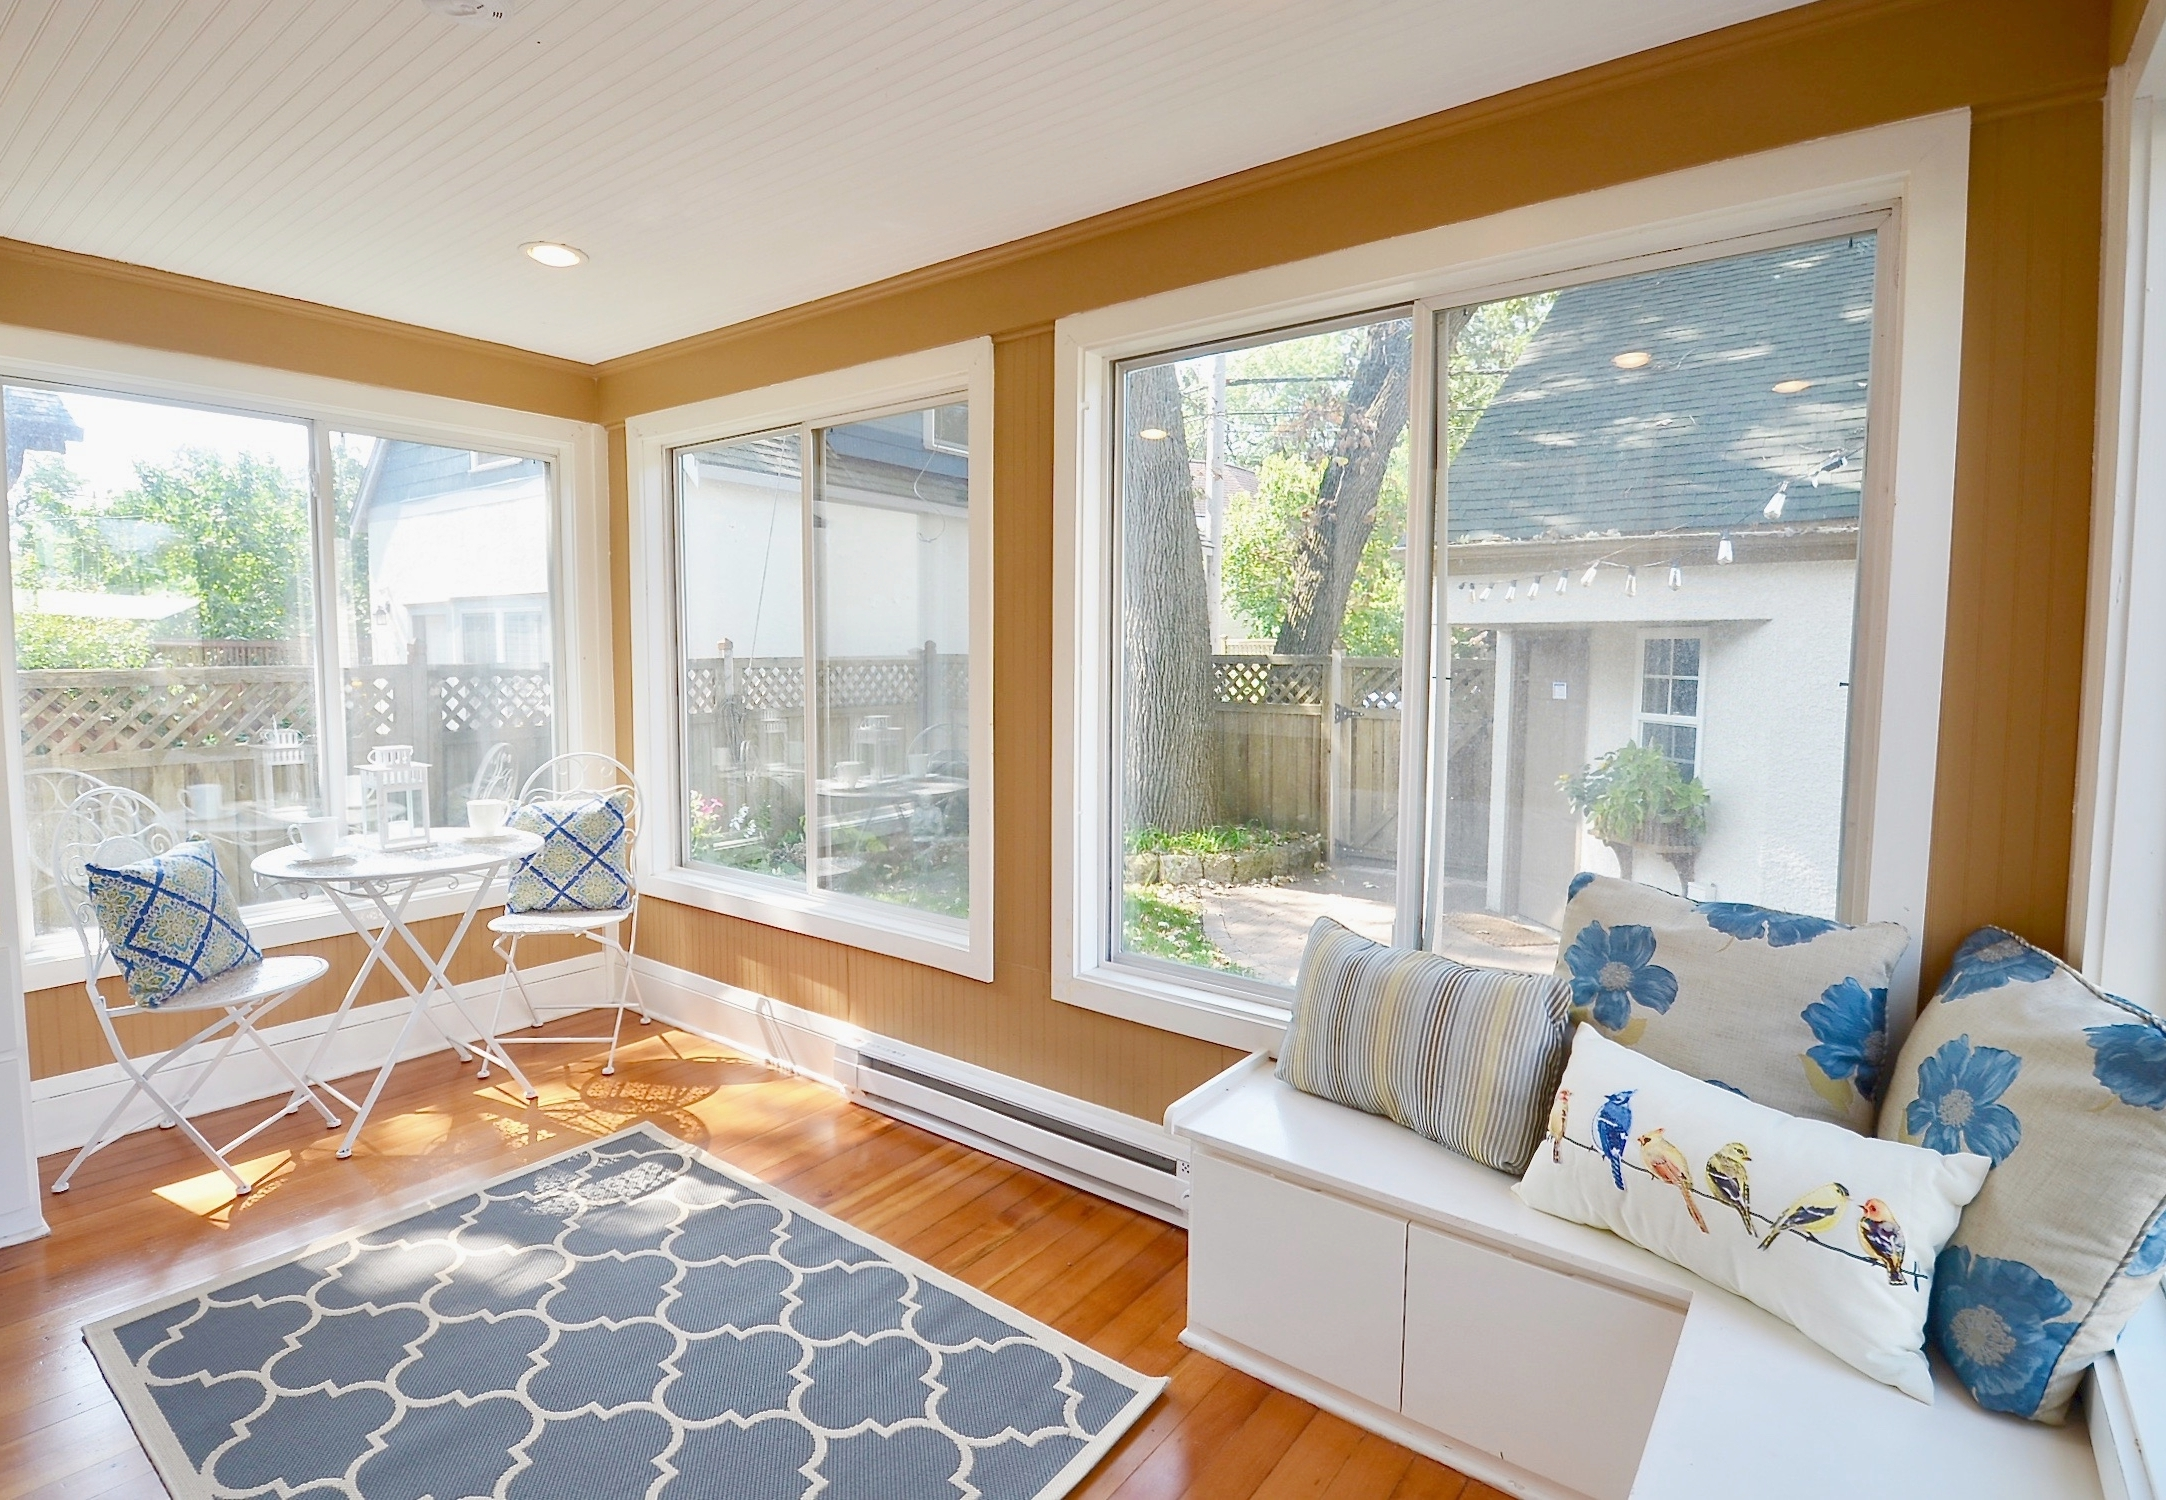 Sunroom-Four-Season-Porch-Home-Staging-Minneapolis.jpg